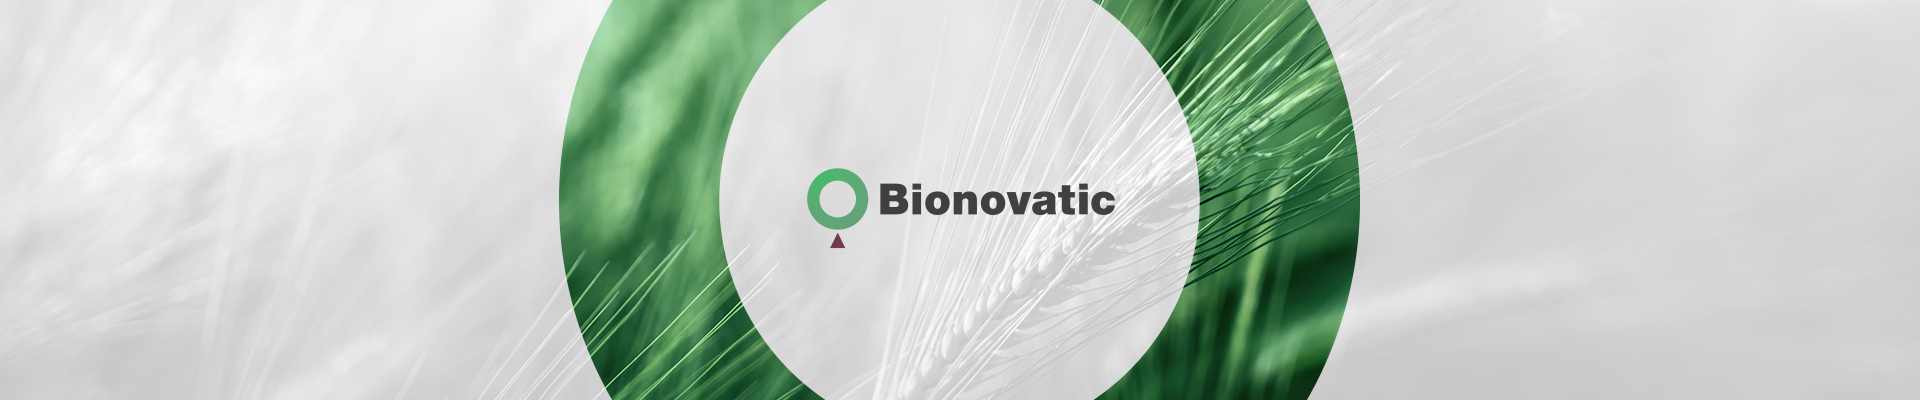 Bionovatic